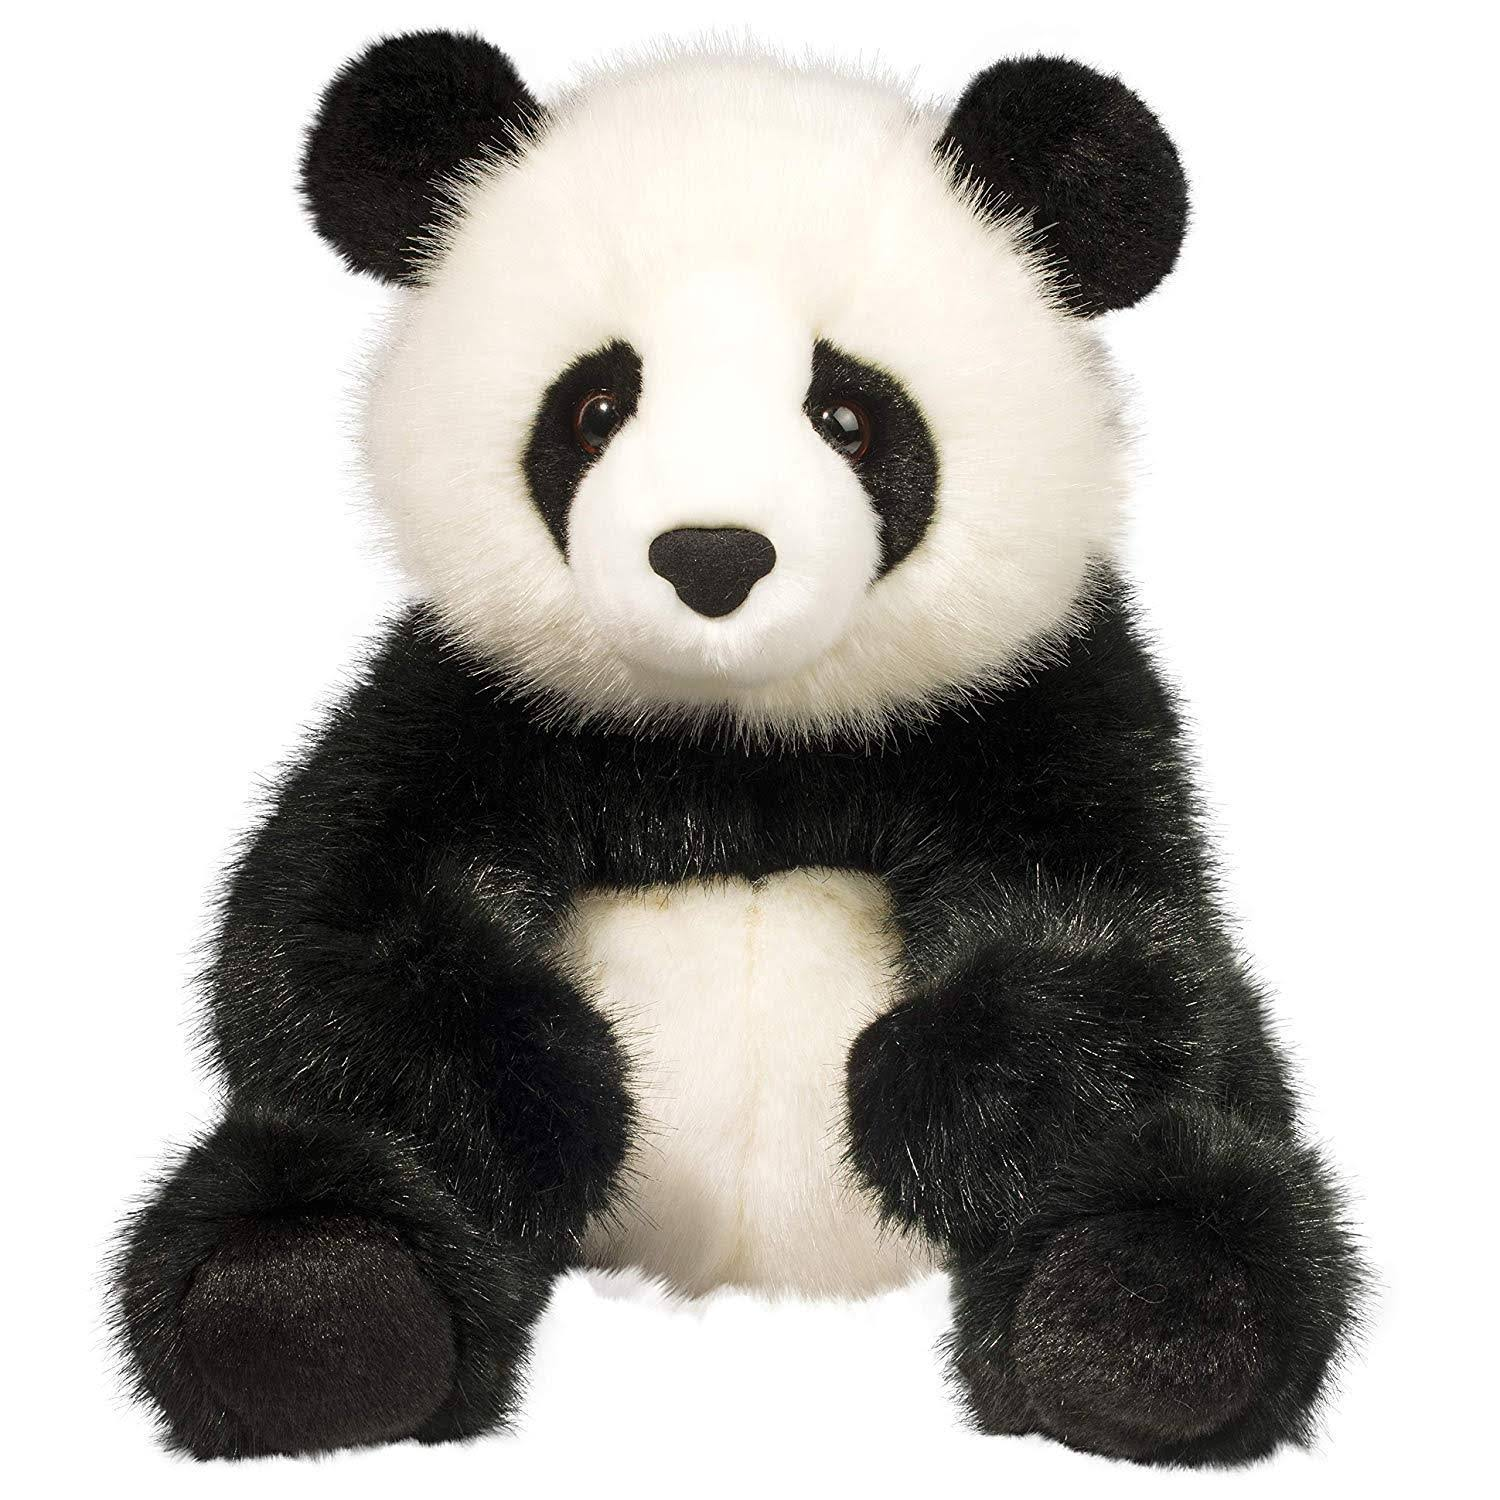 Douglas Plush Emmett Panda Stuffed Animal